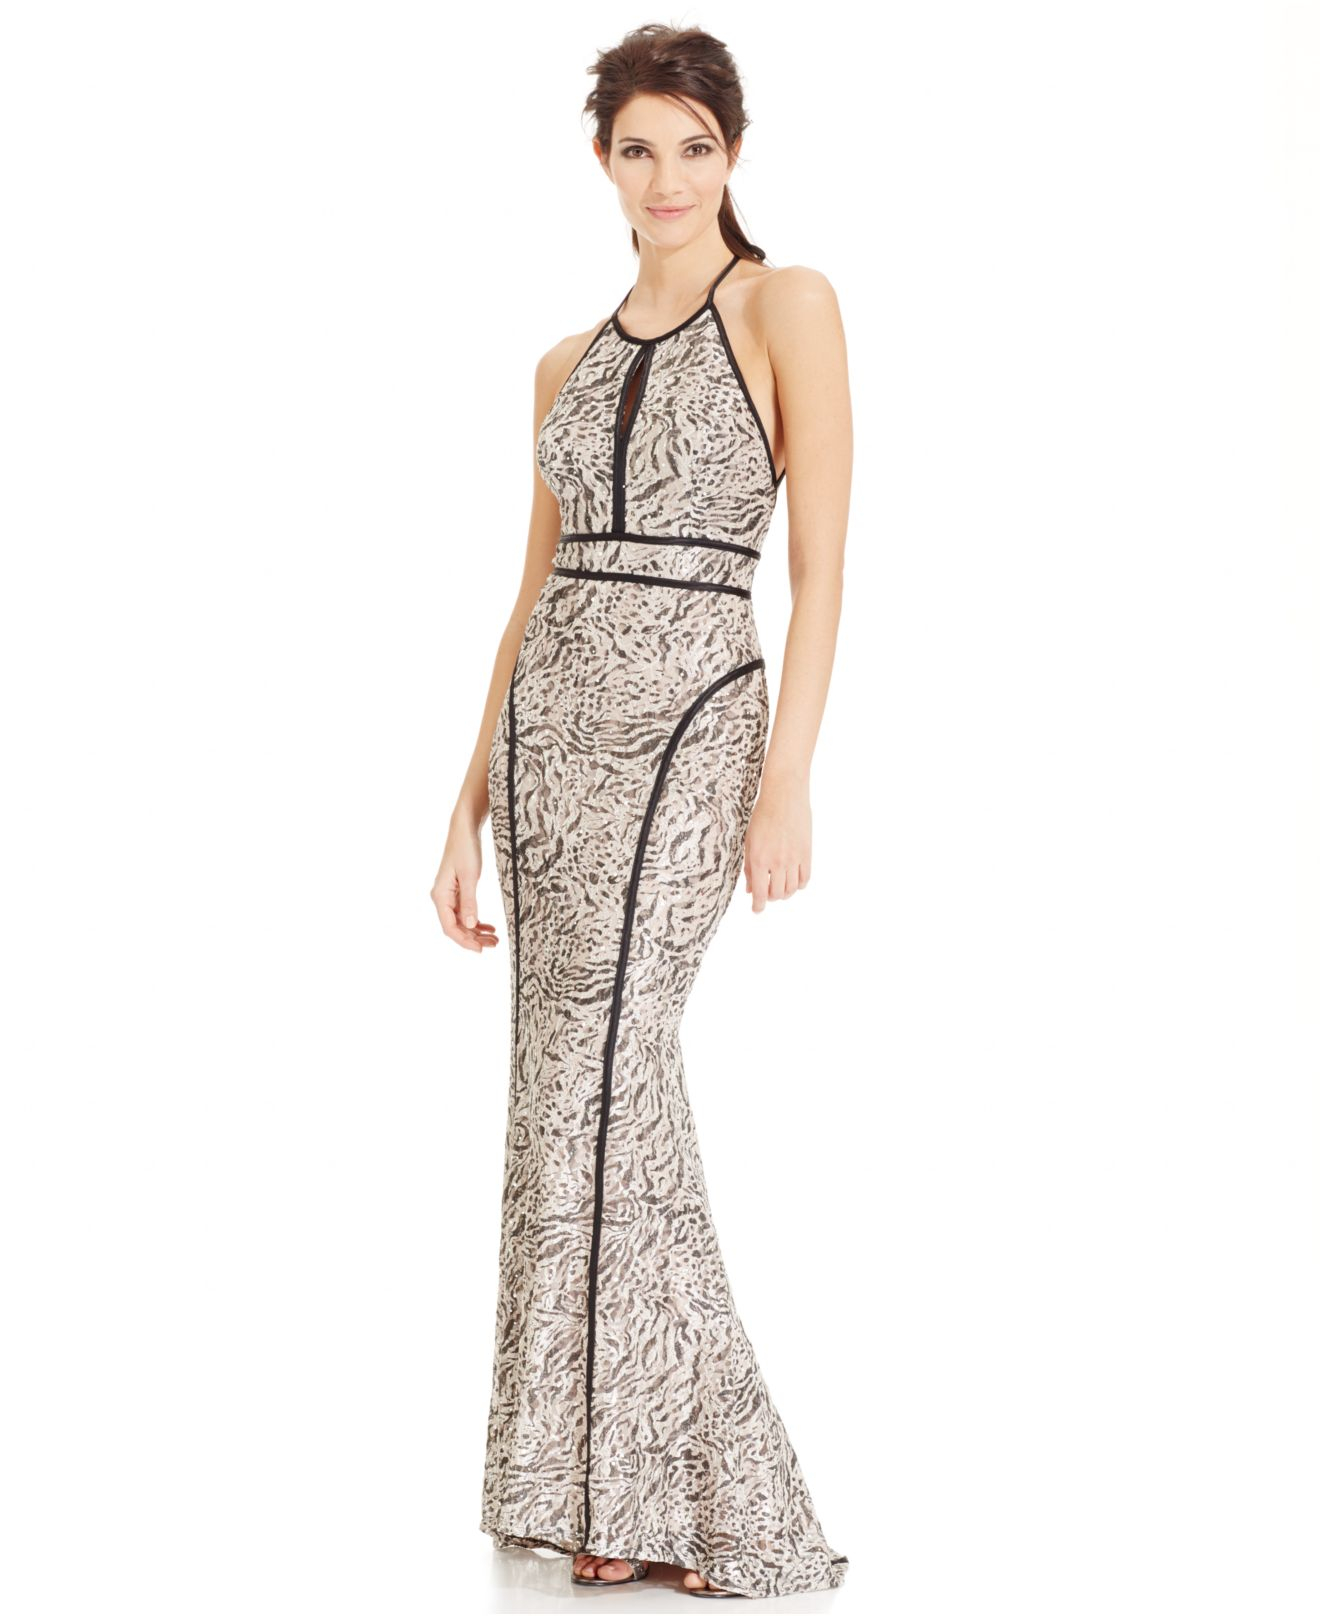 Lyst - Xscape Animal-print Lace Open-back Halter Gown in Metallic